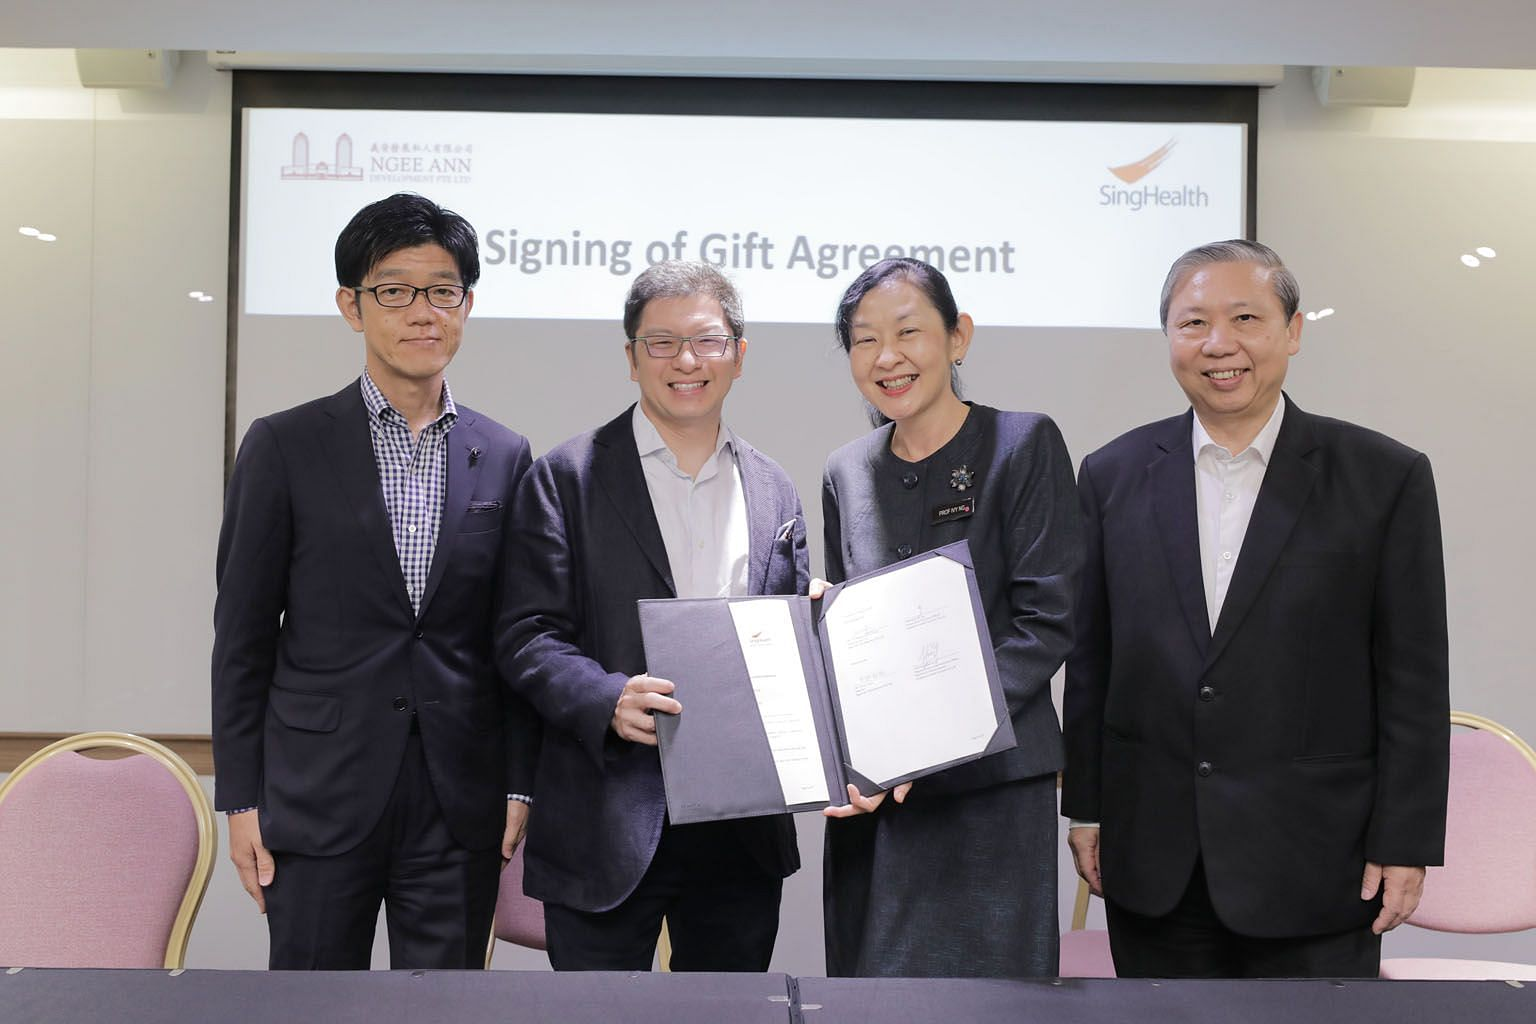 At the gift agreement signing ceremony yesterday were (from far left): Ngee Ann Development's director Tatsuo Yano and executive director Jamie Teo, and SingHealth's group CEO, Professor Ivy Ng, and deputy group CEO, Professor Fong Kok Yong.